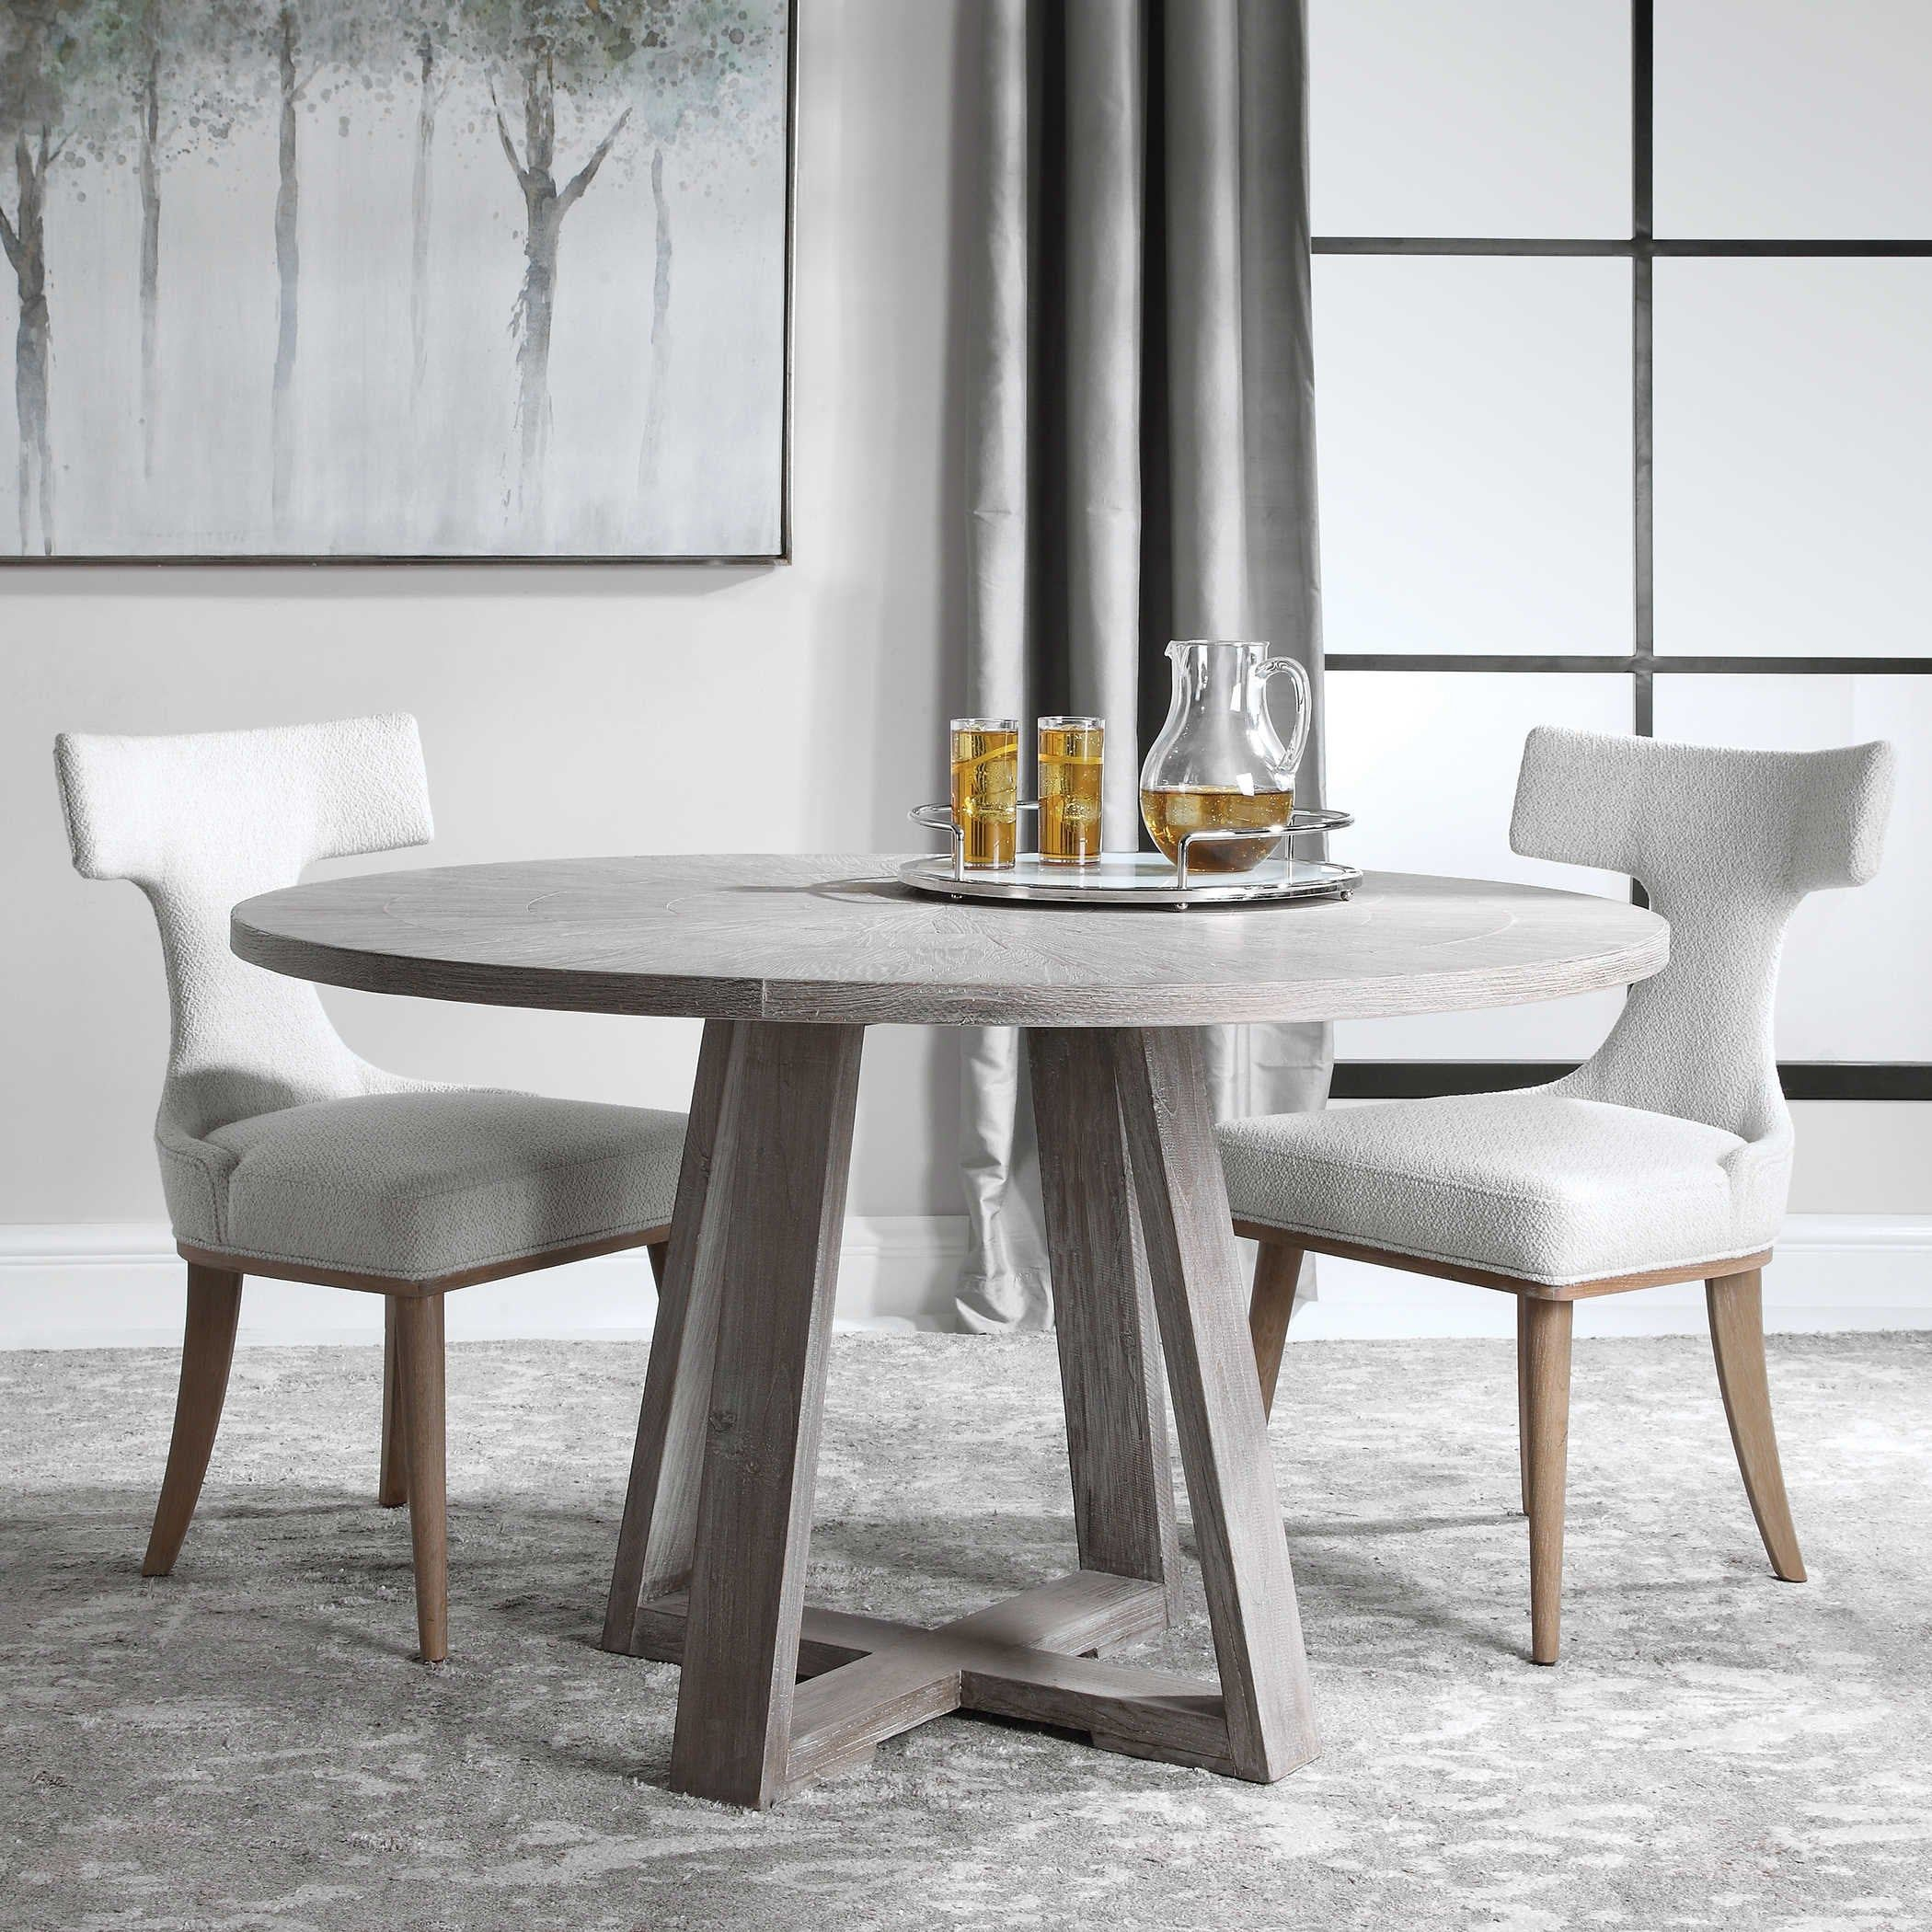 Round Glass Dining Table Round Glass Table With Wooden Base Etsy Grey Dining Tables Round Dining Table Dining Table